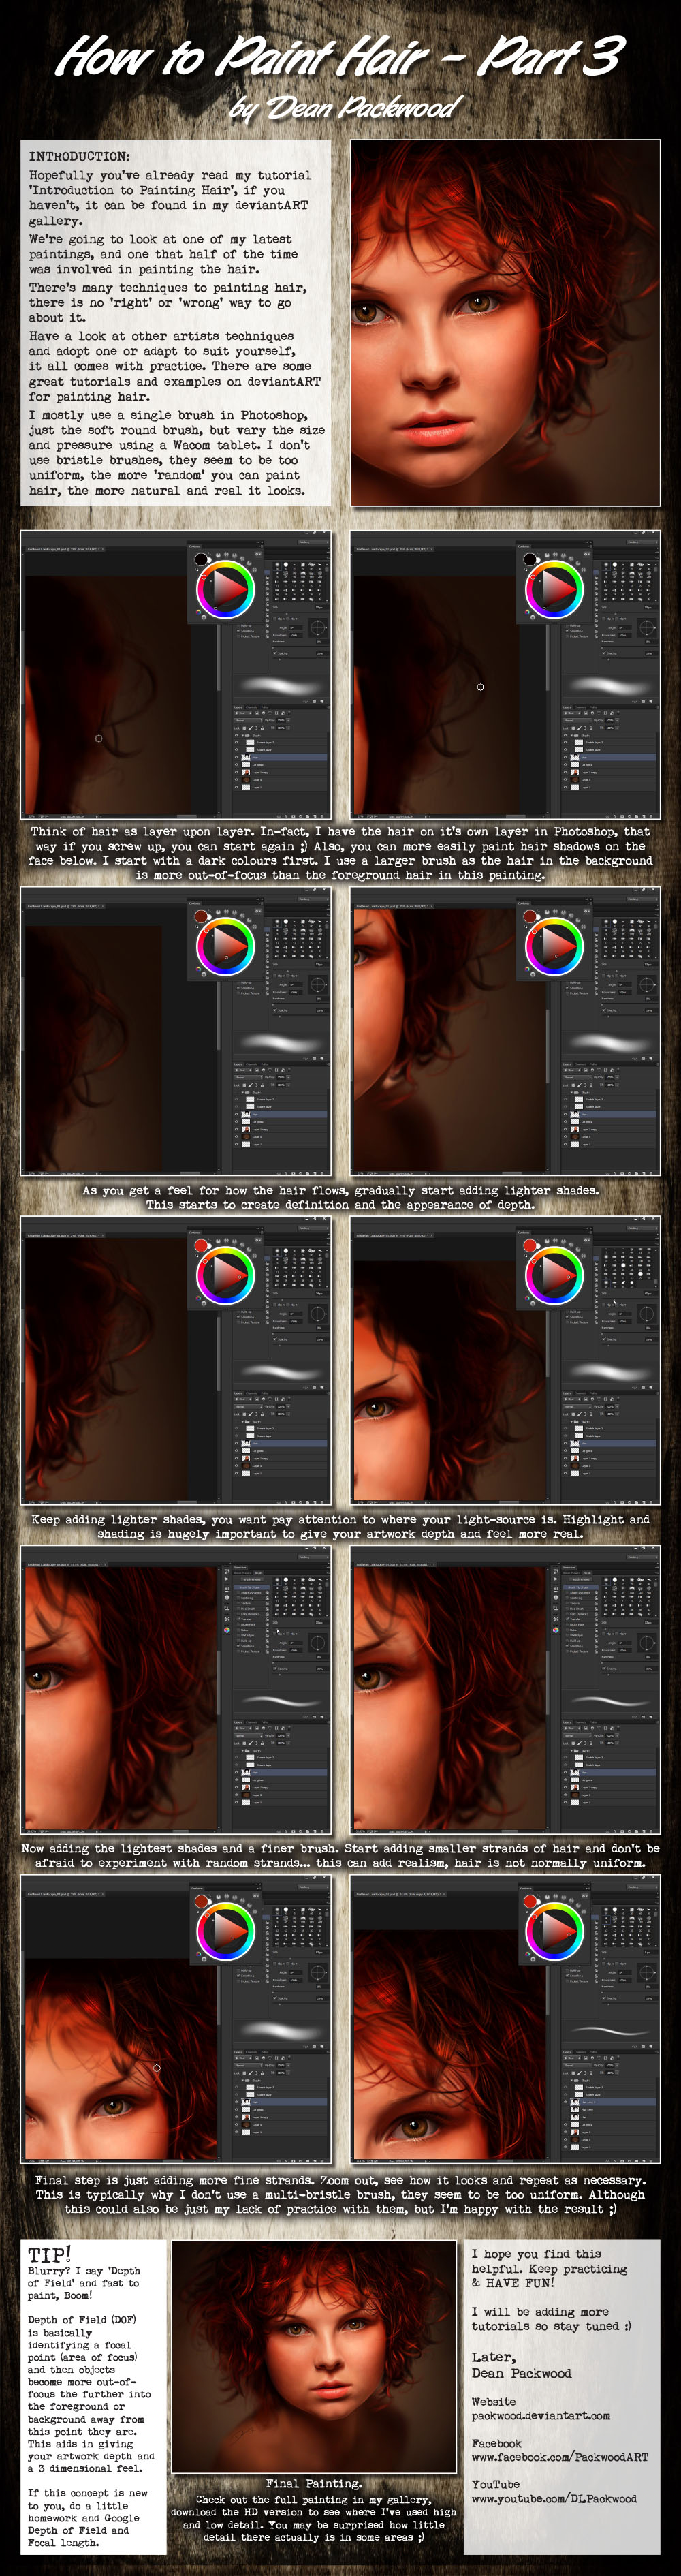 Painting Hair - Part 3 by Packwood